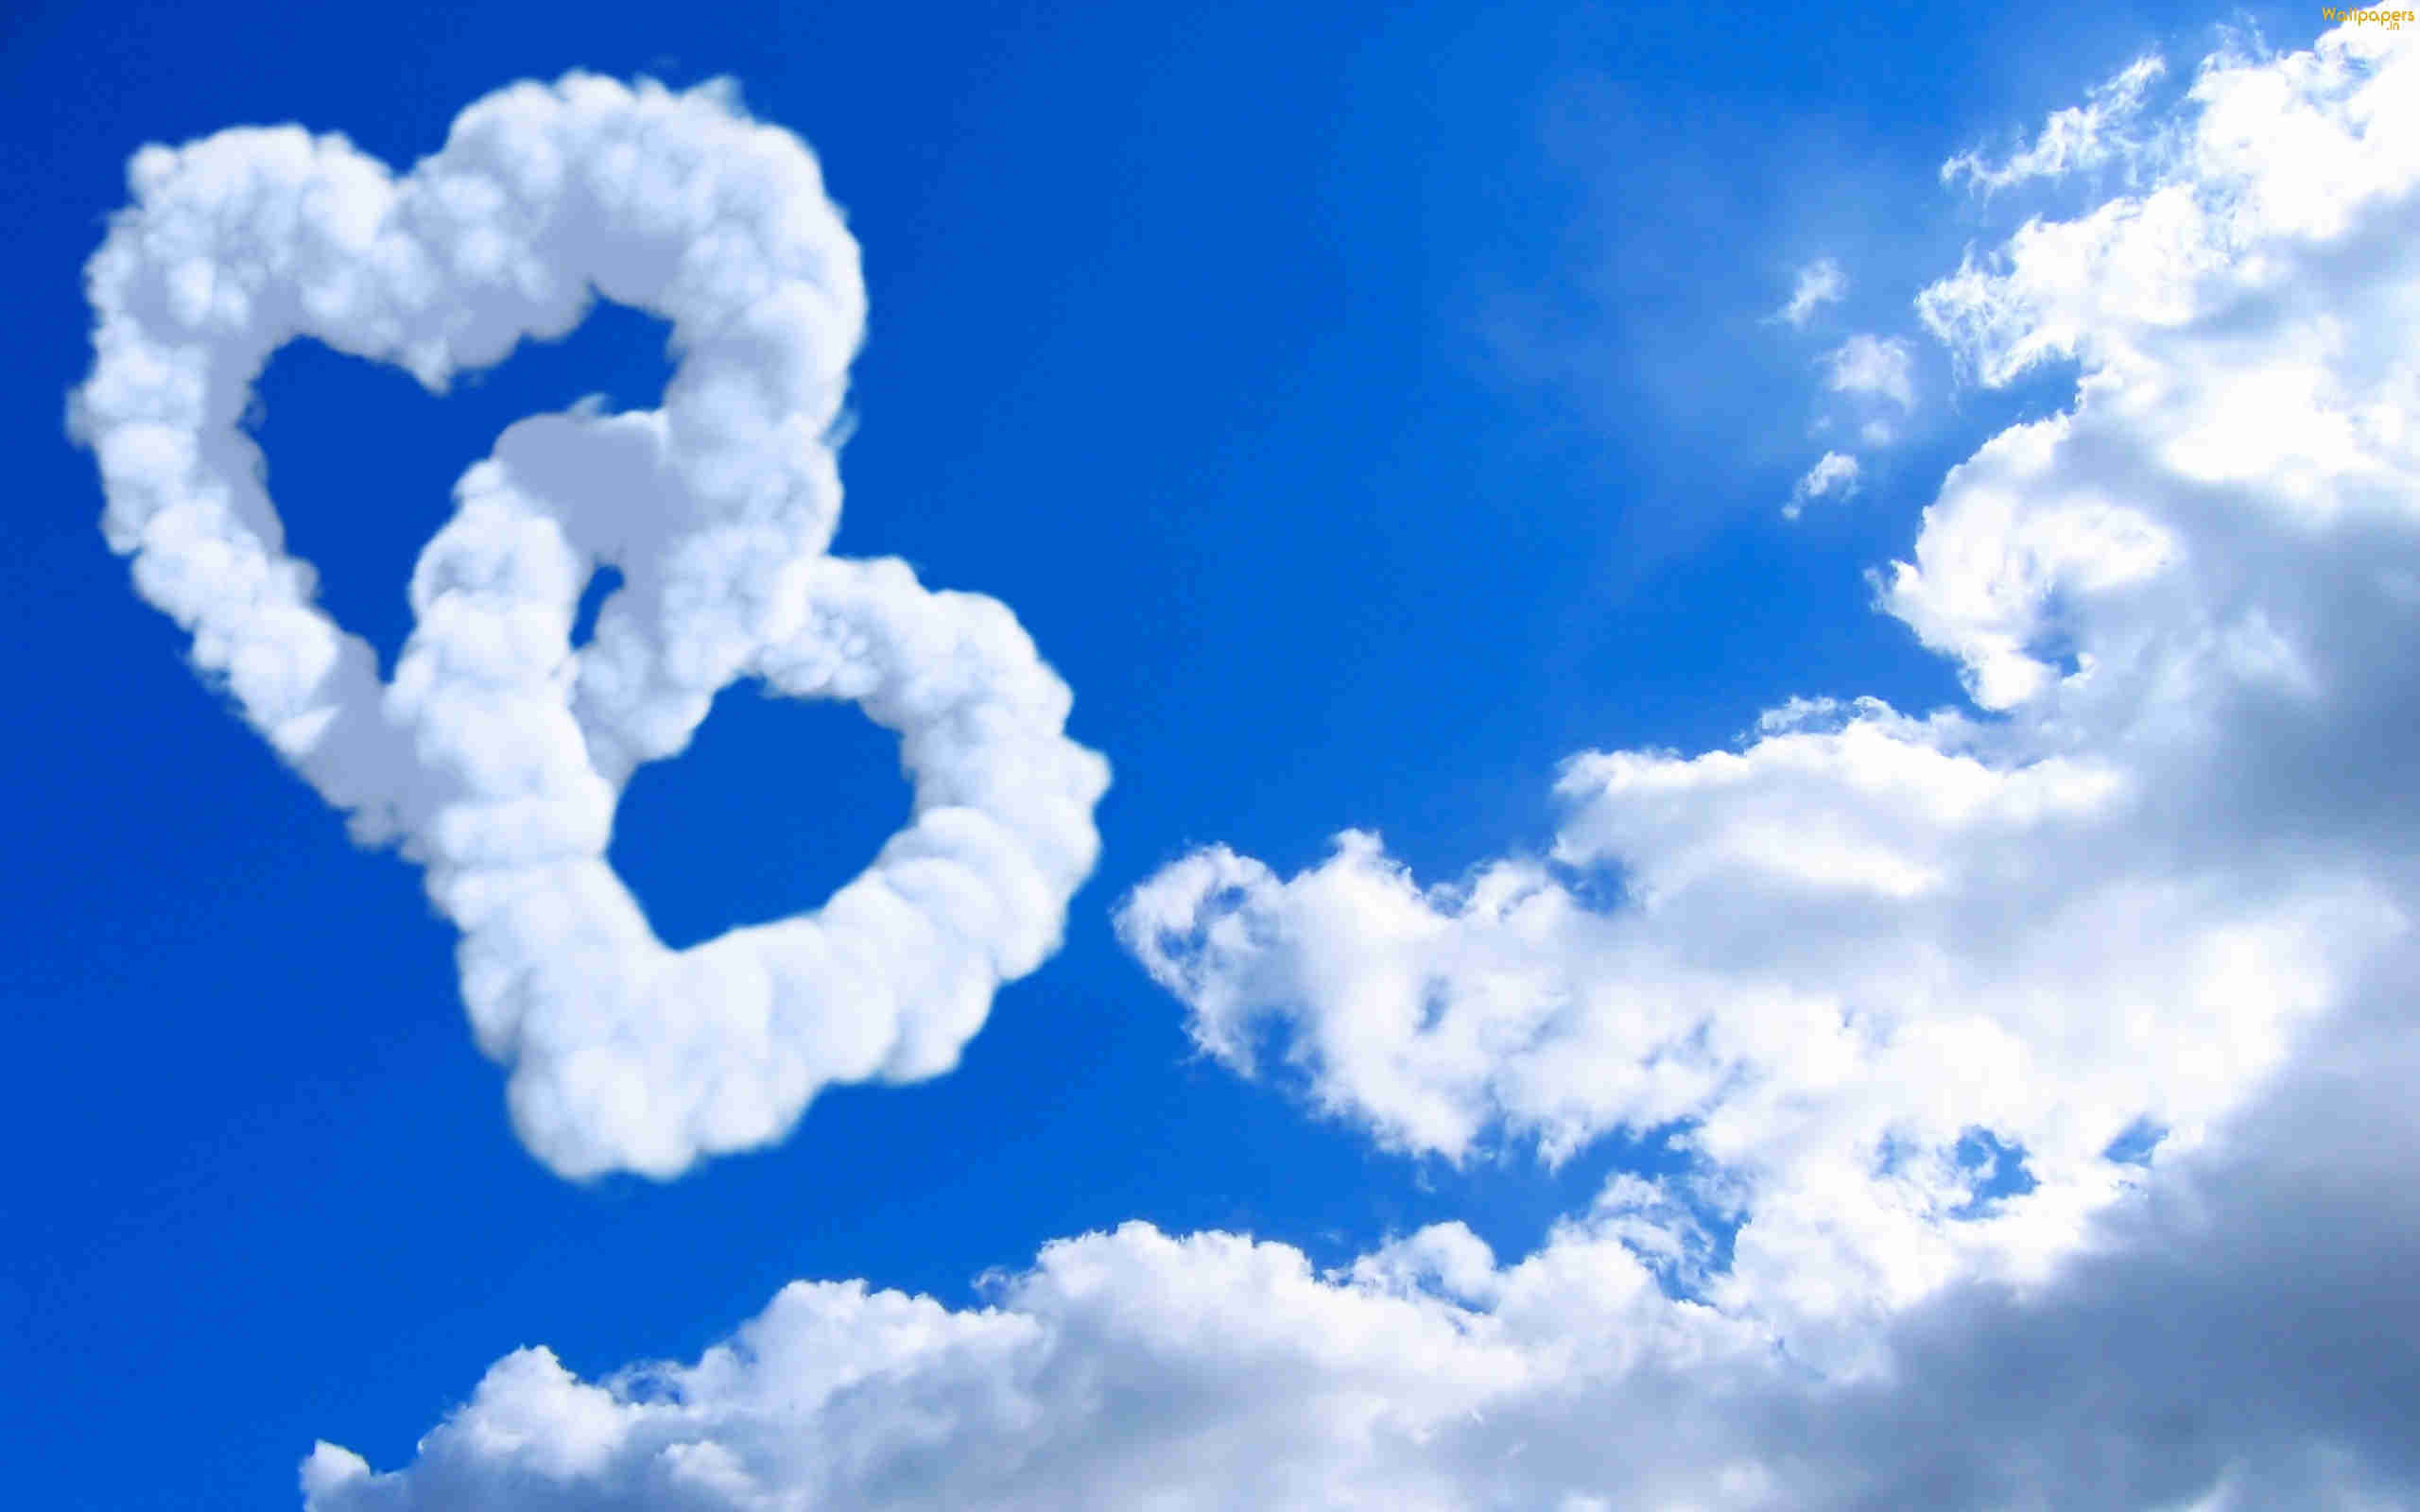 2560x1600 Cloud Of Love Background Wallpaper